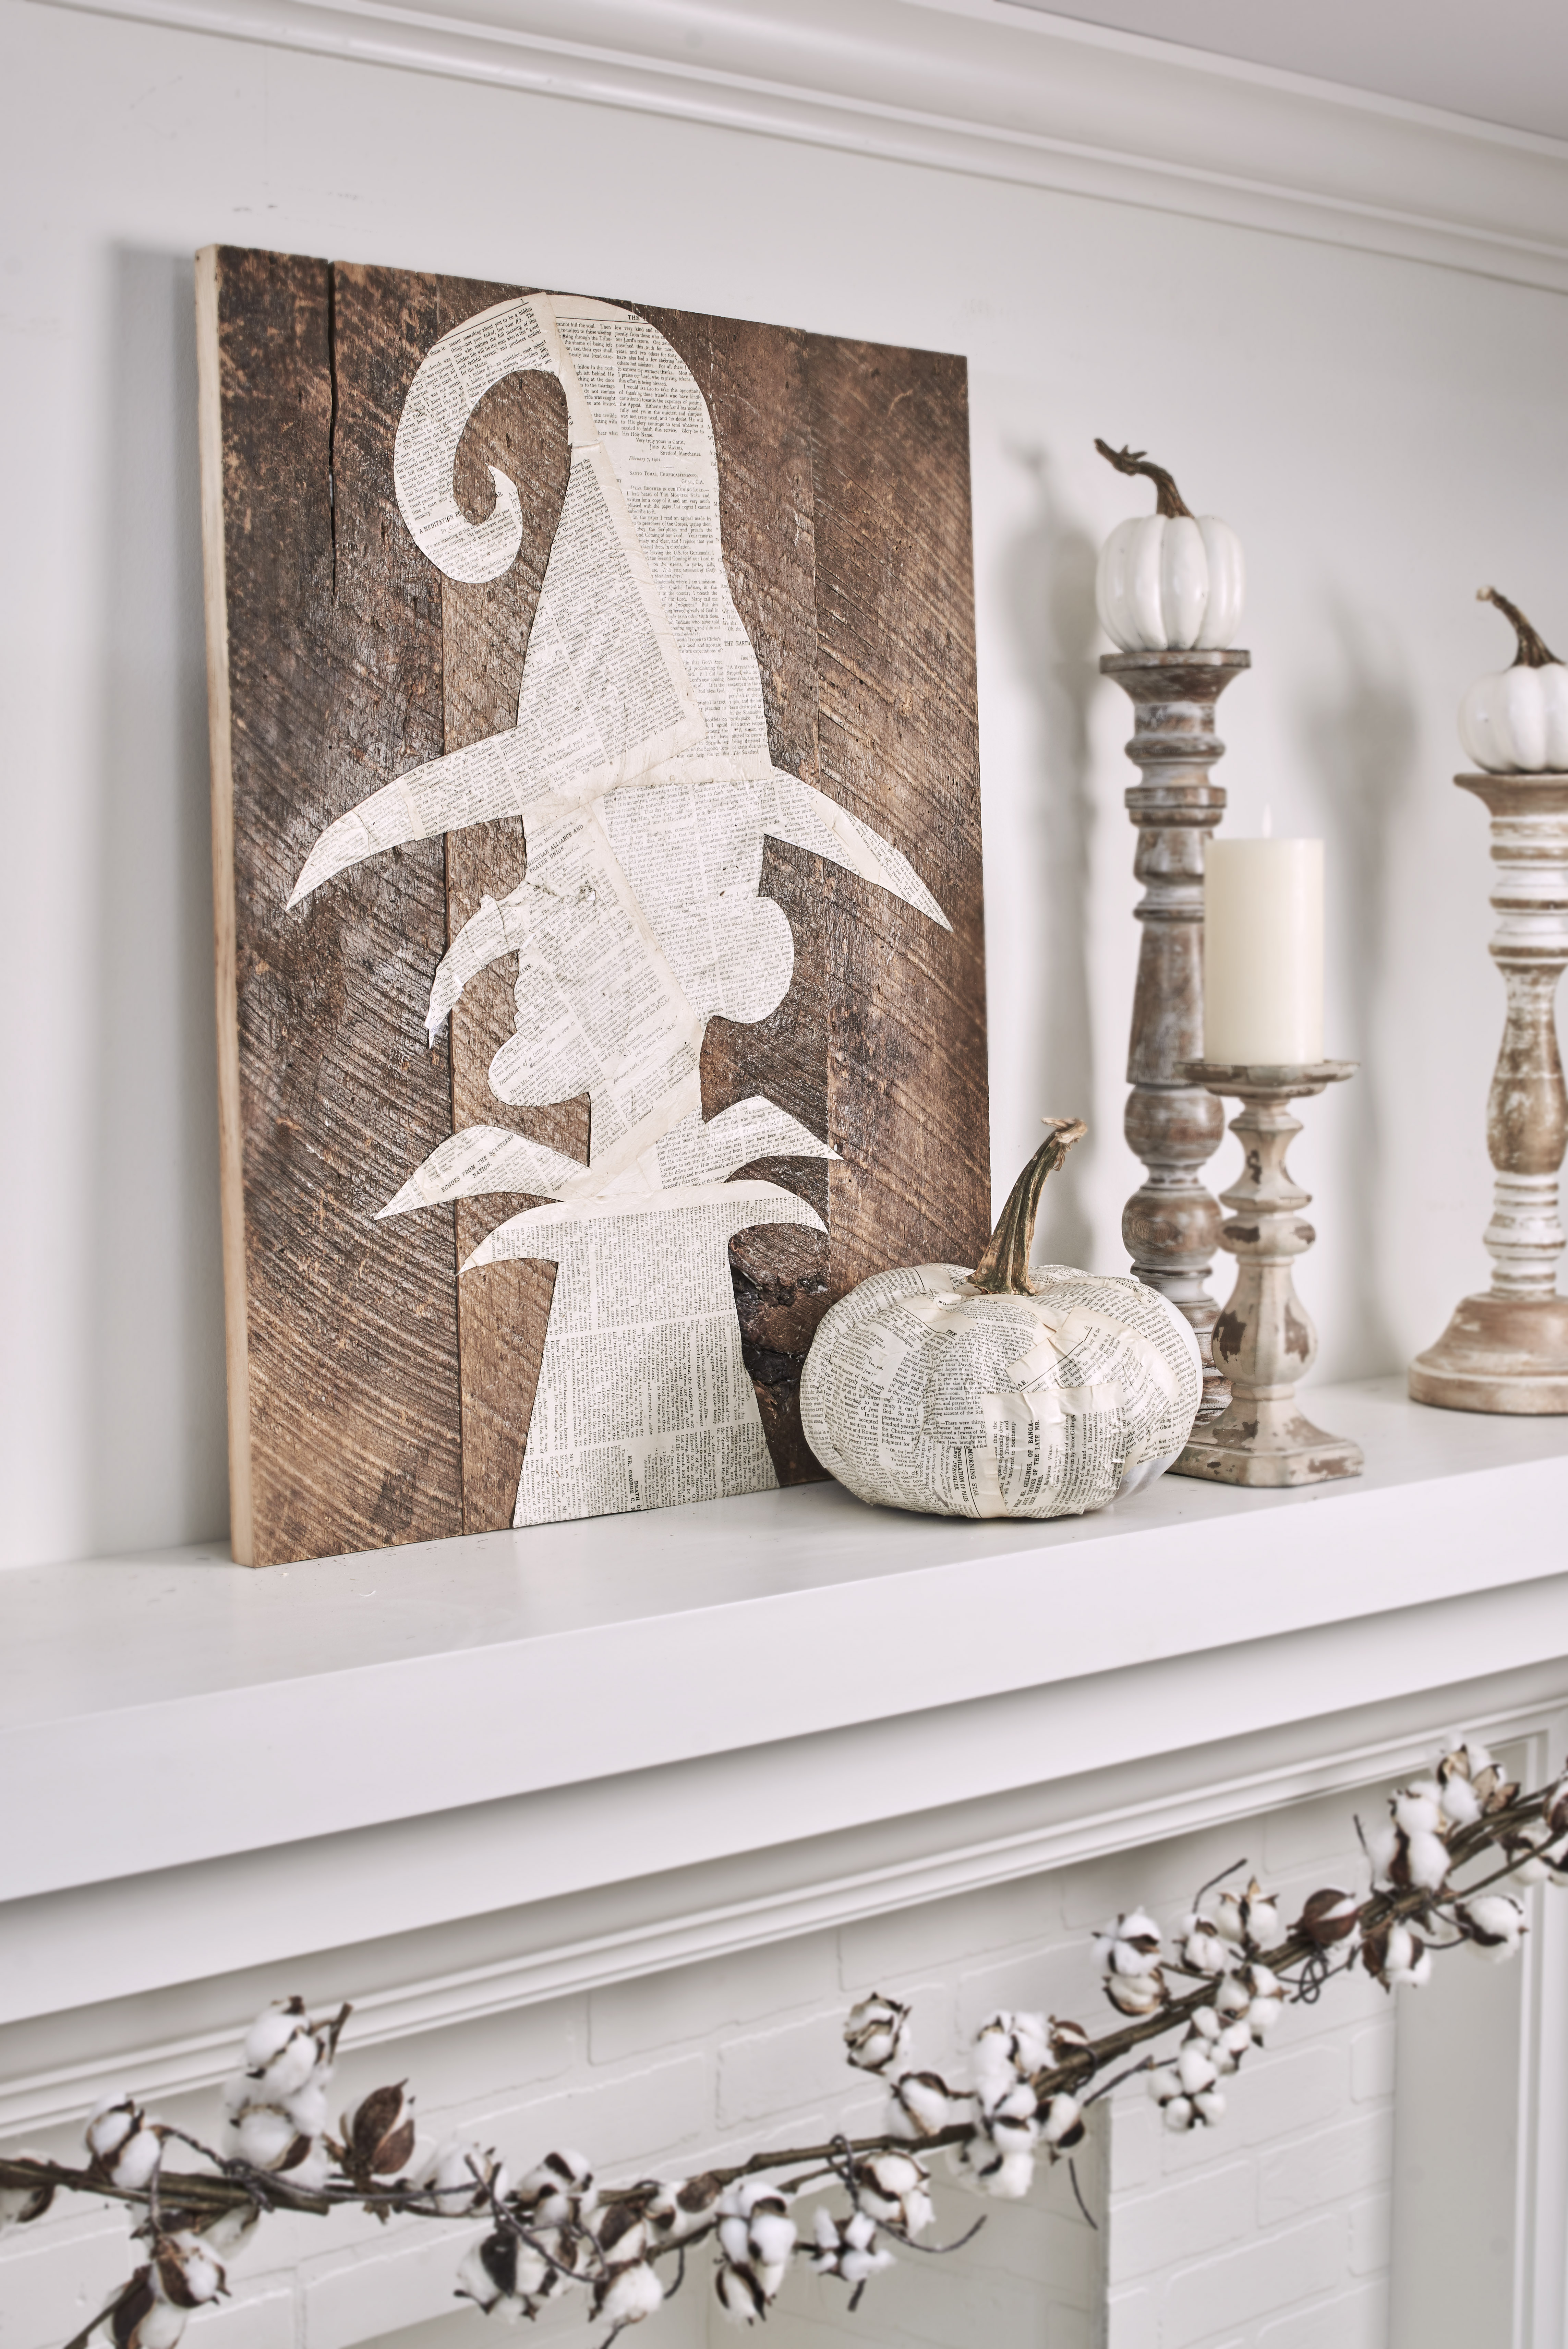 brown wood sign with a white witch painted on it, sitting on a white mantel